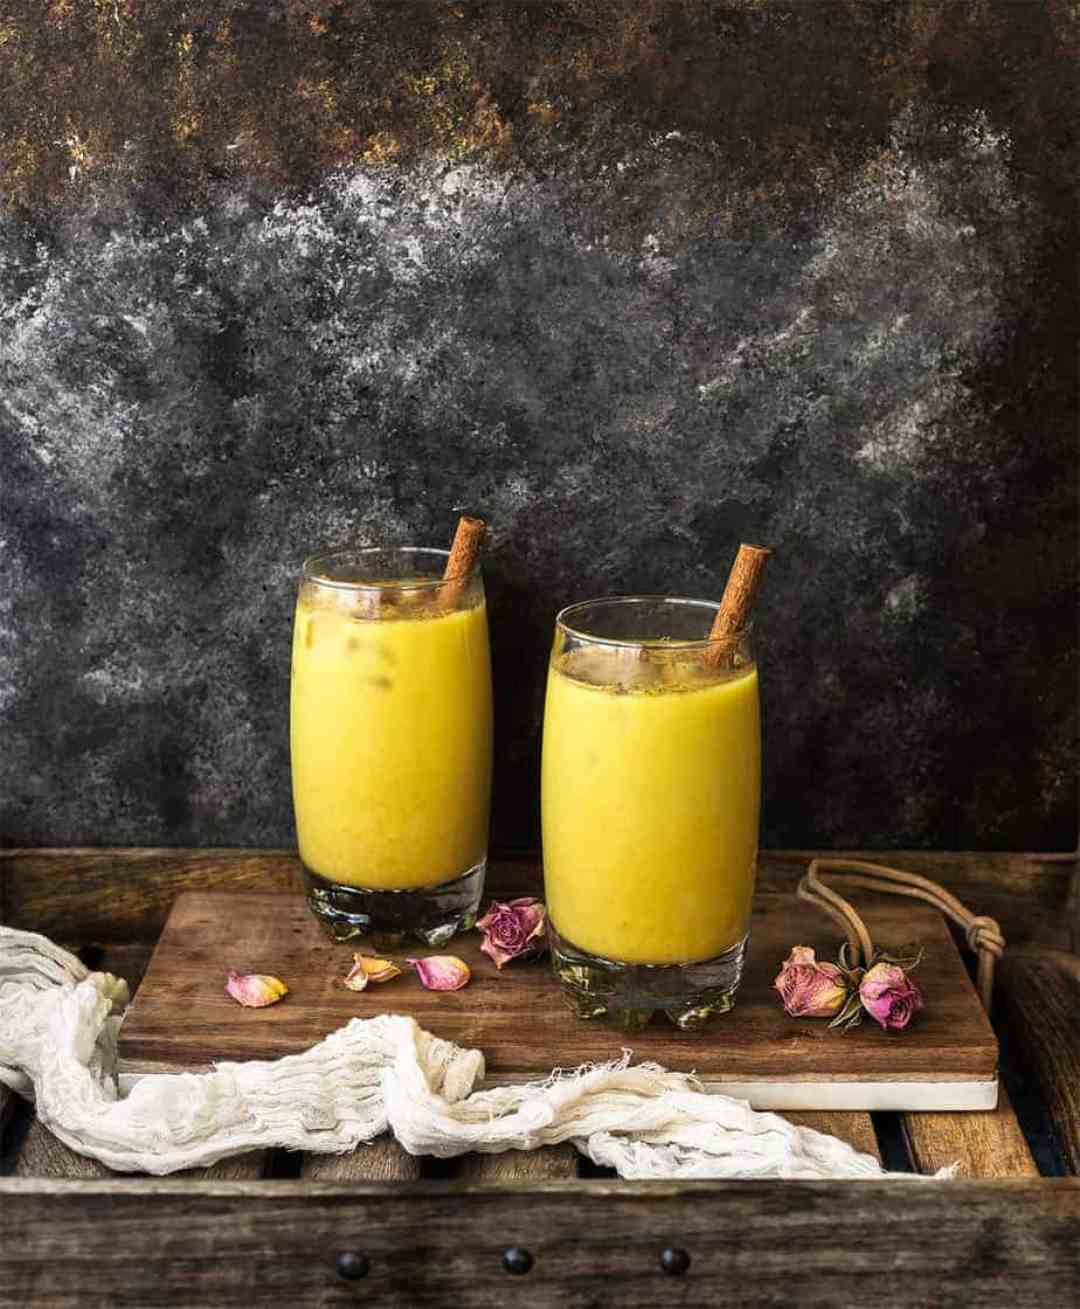 golden milk recipe turmeric. Anti-inflammatory drink to prevent cancer, treat arthritis and more